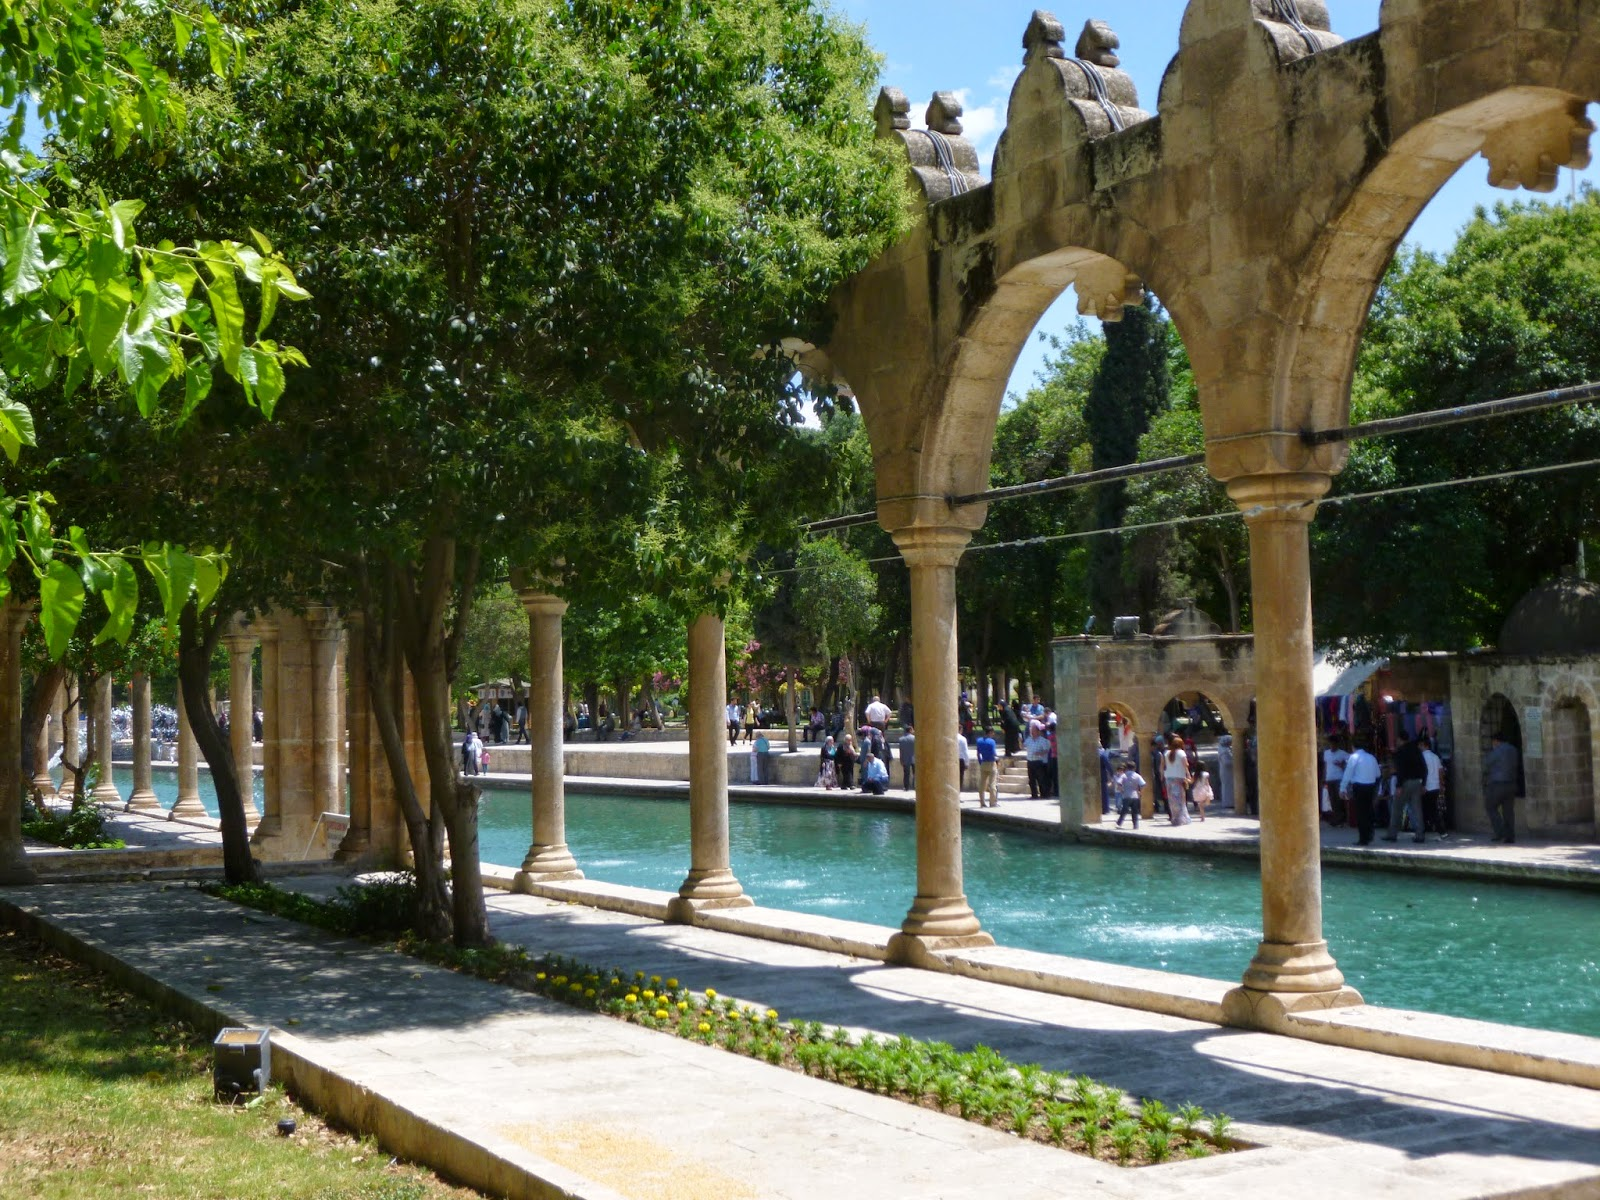 A brilliantly blue fish pool in Urfa, Turkey, bordered by white columns.